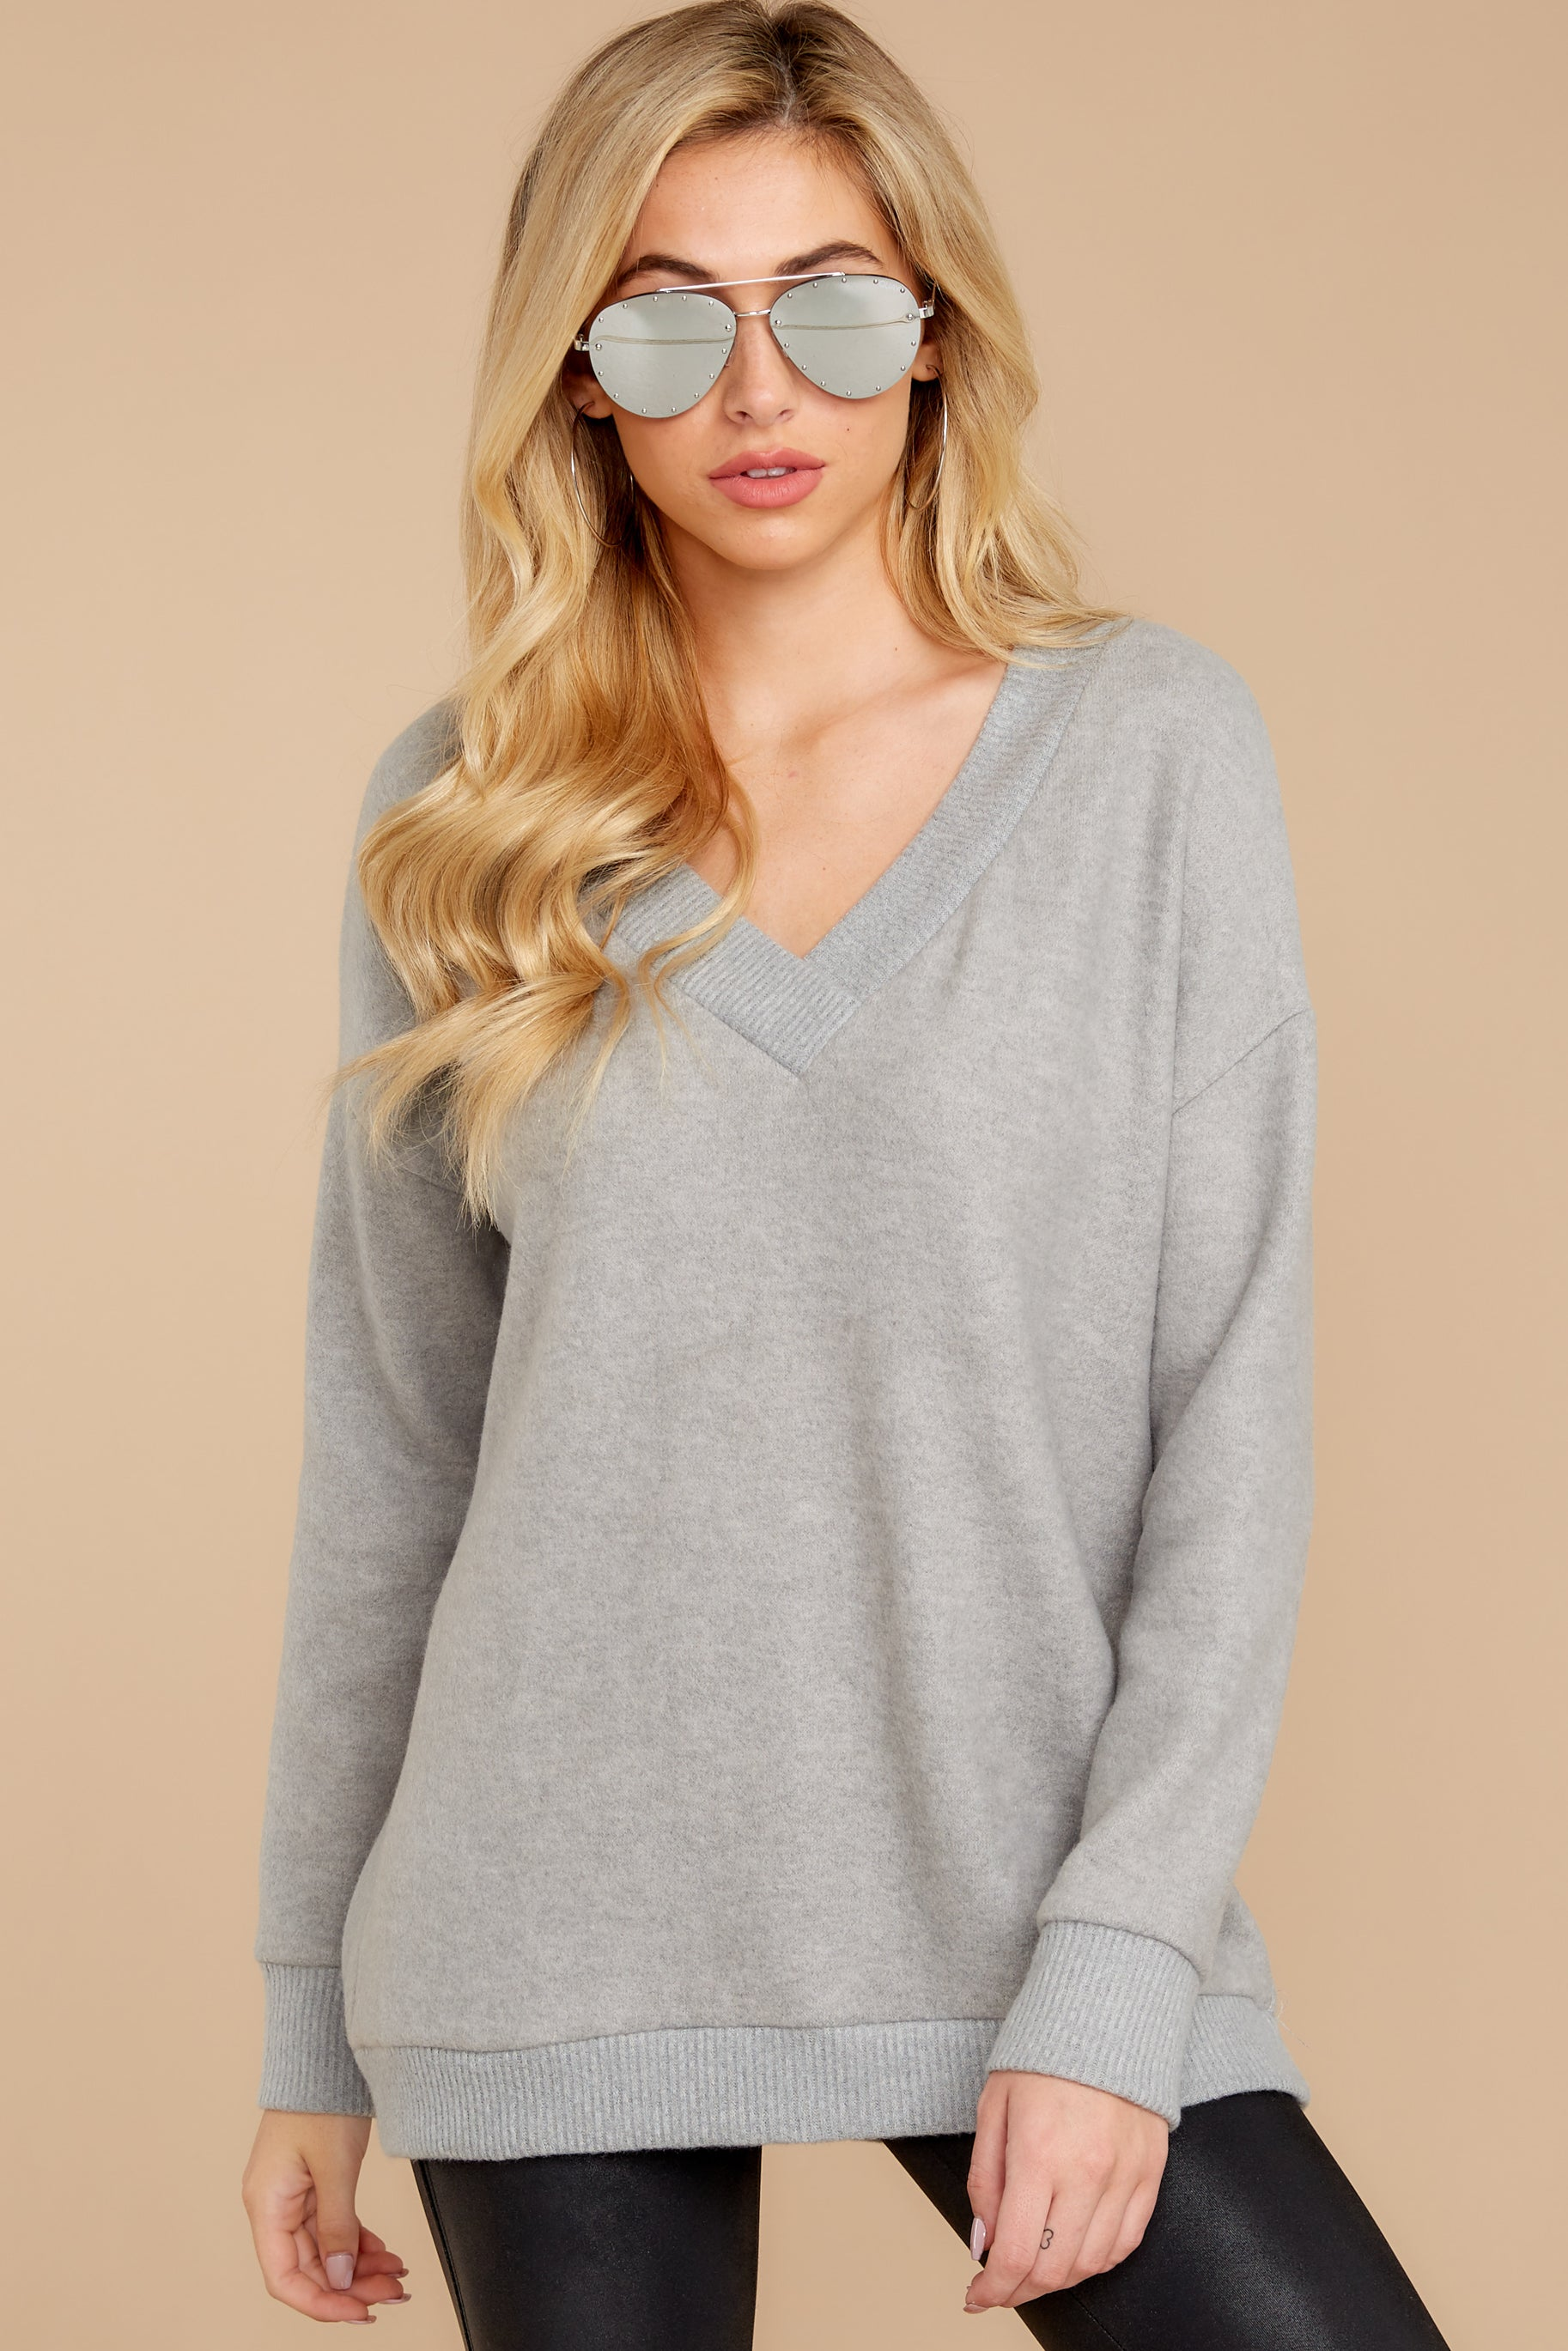 6 Soon Enough Heather Grey Sweater at reddressboutique.com